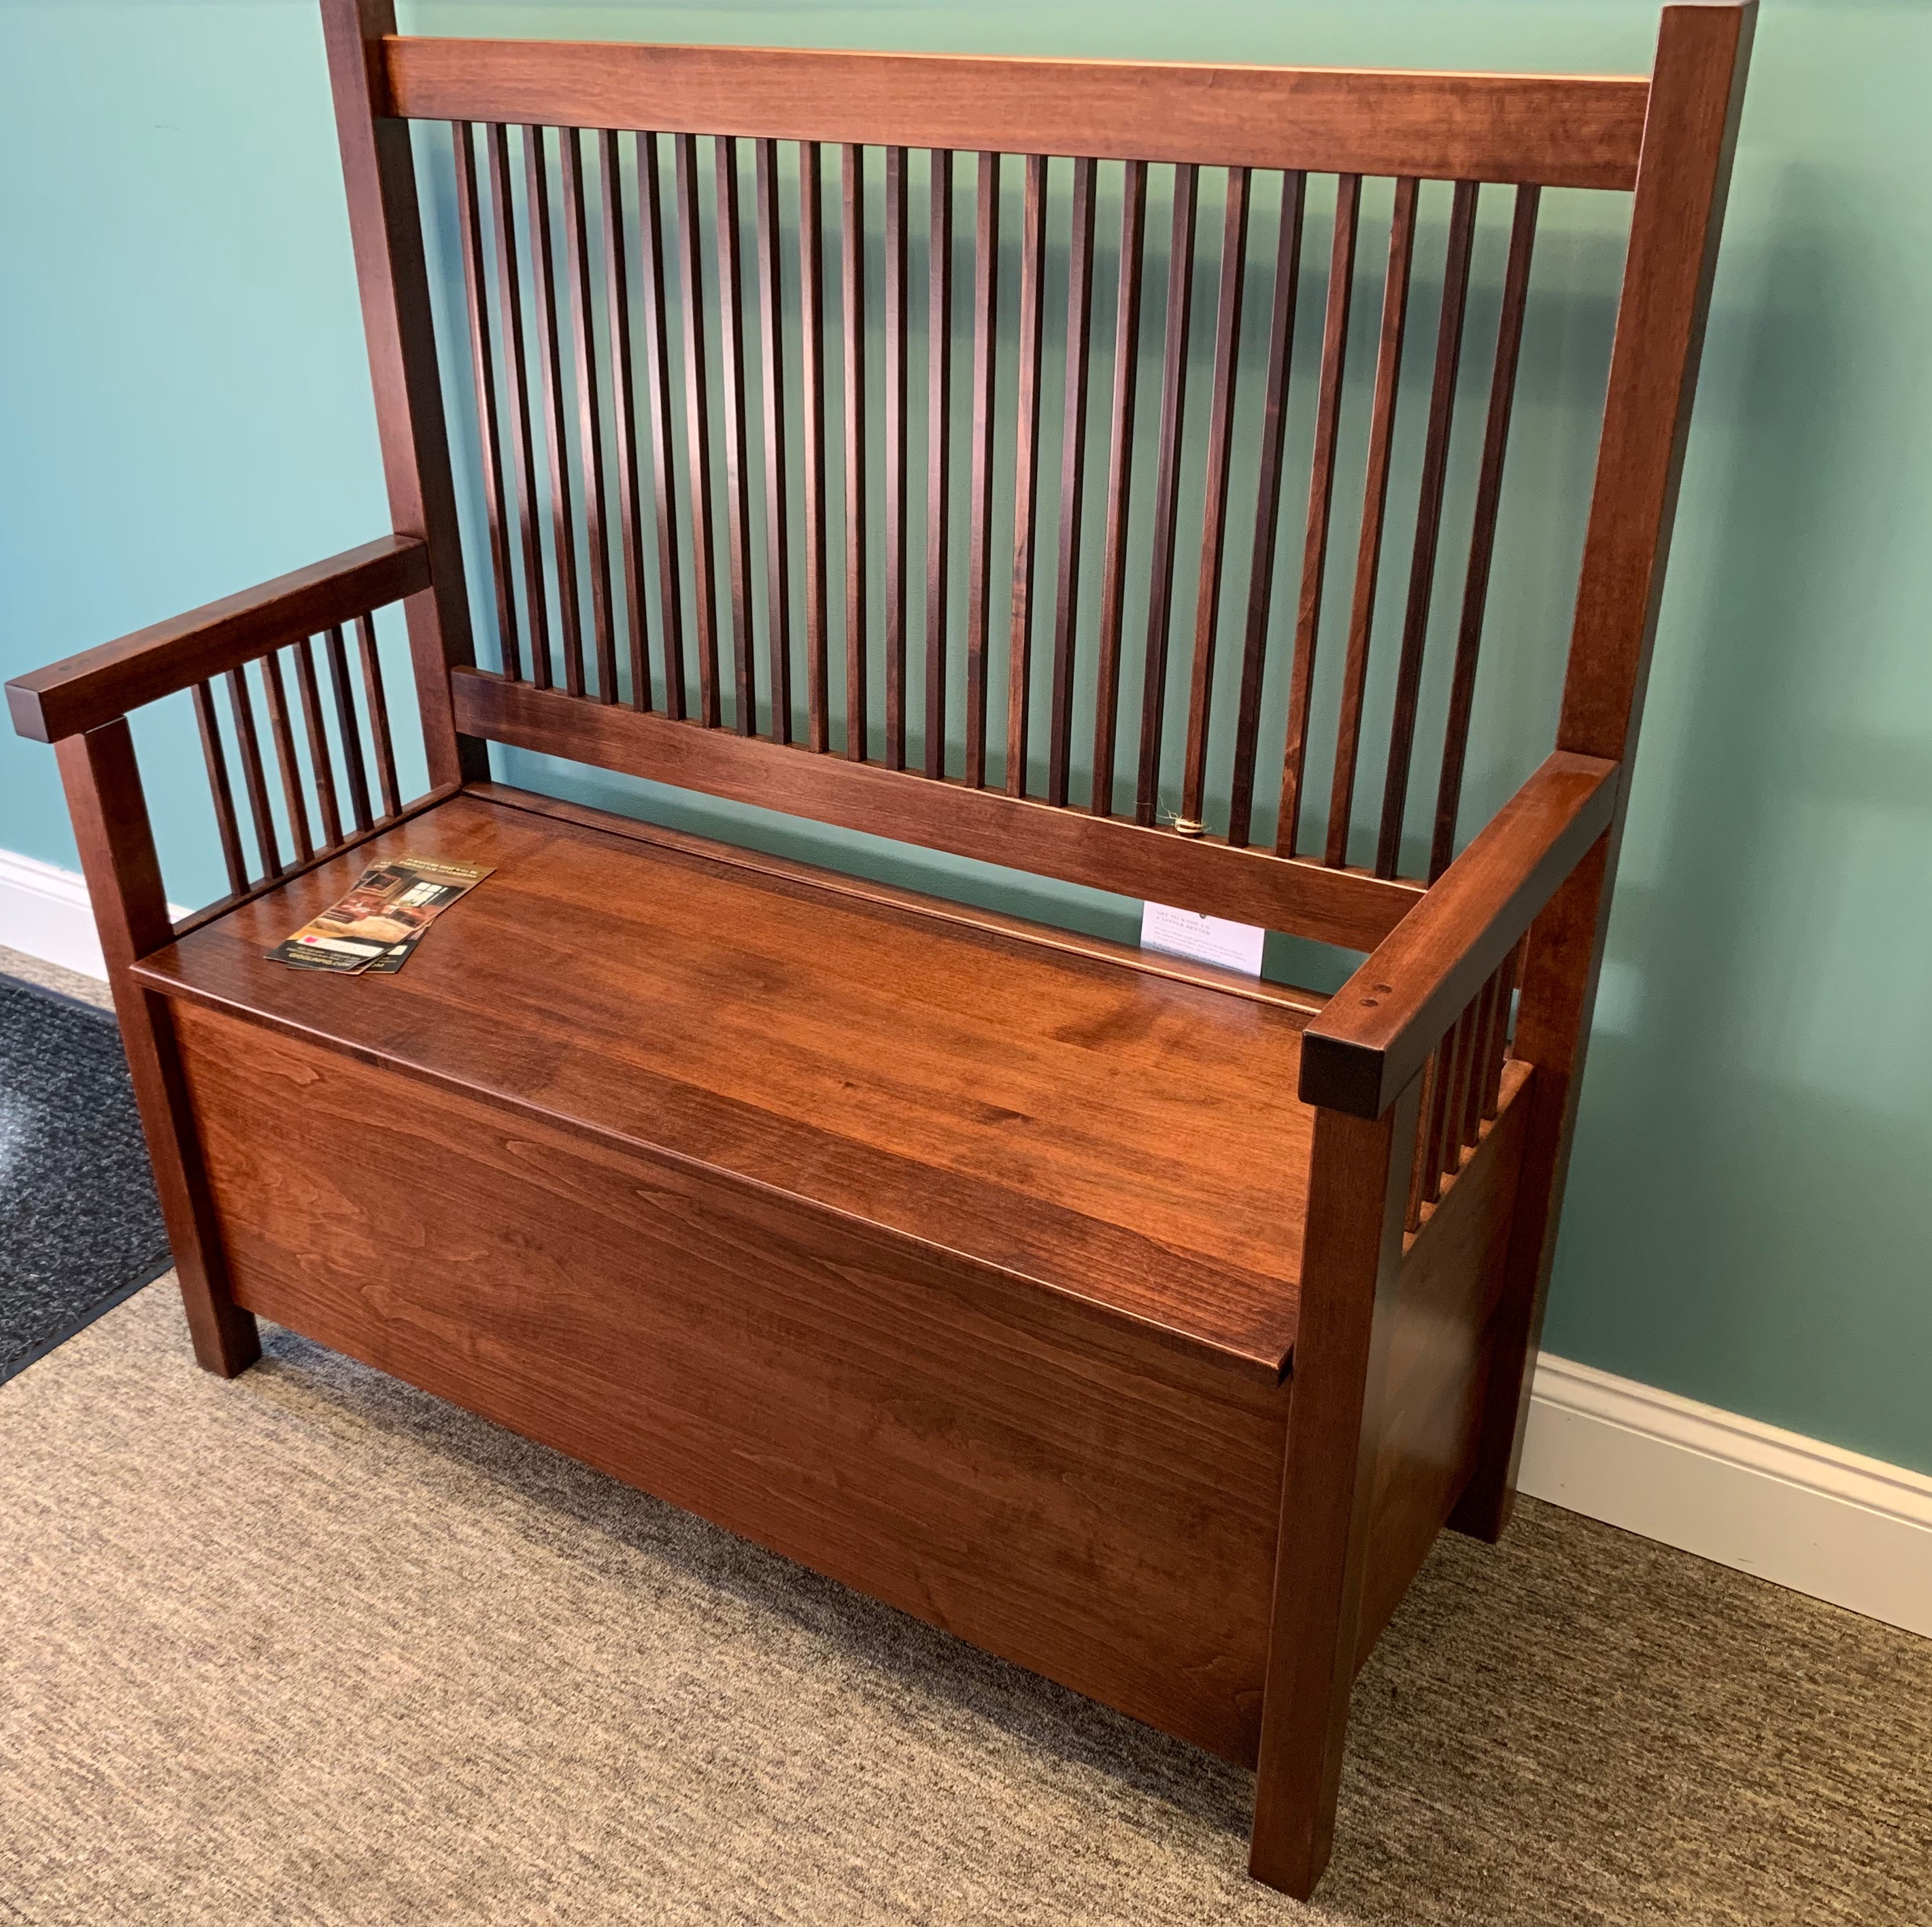 Mission Deacons Bench with storage